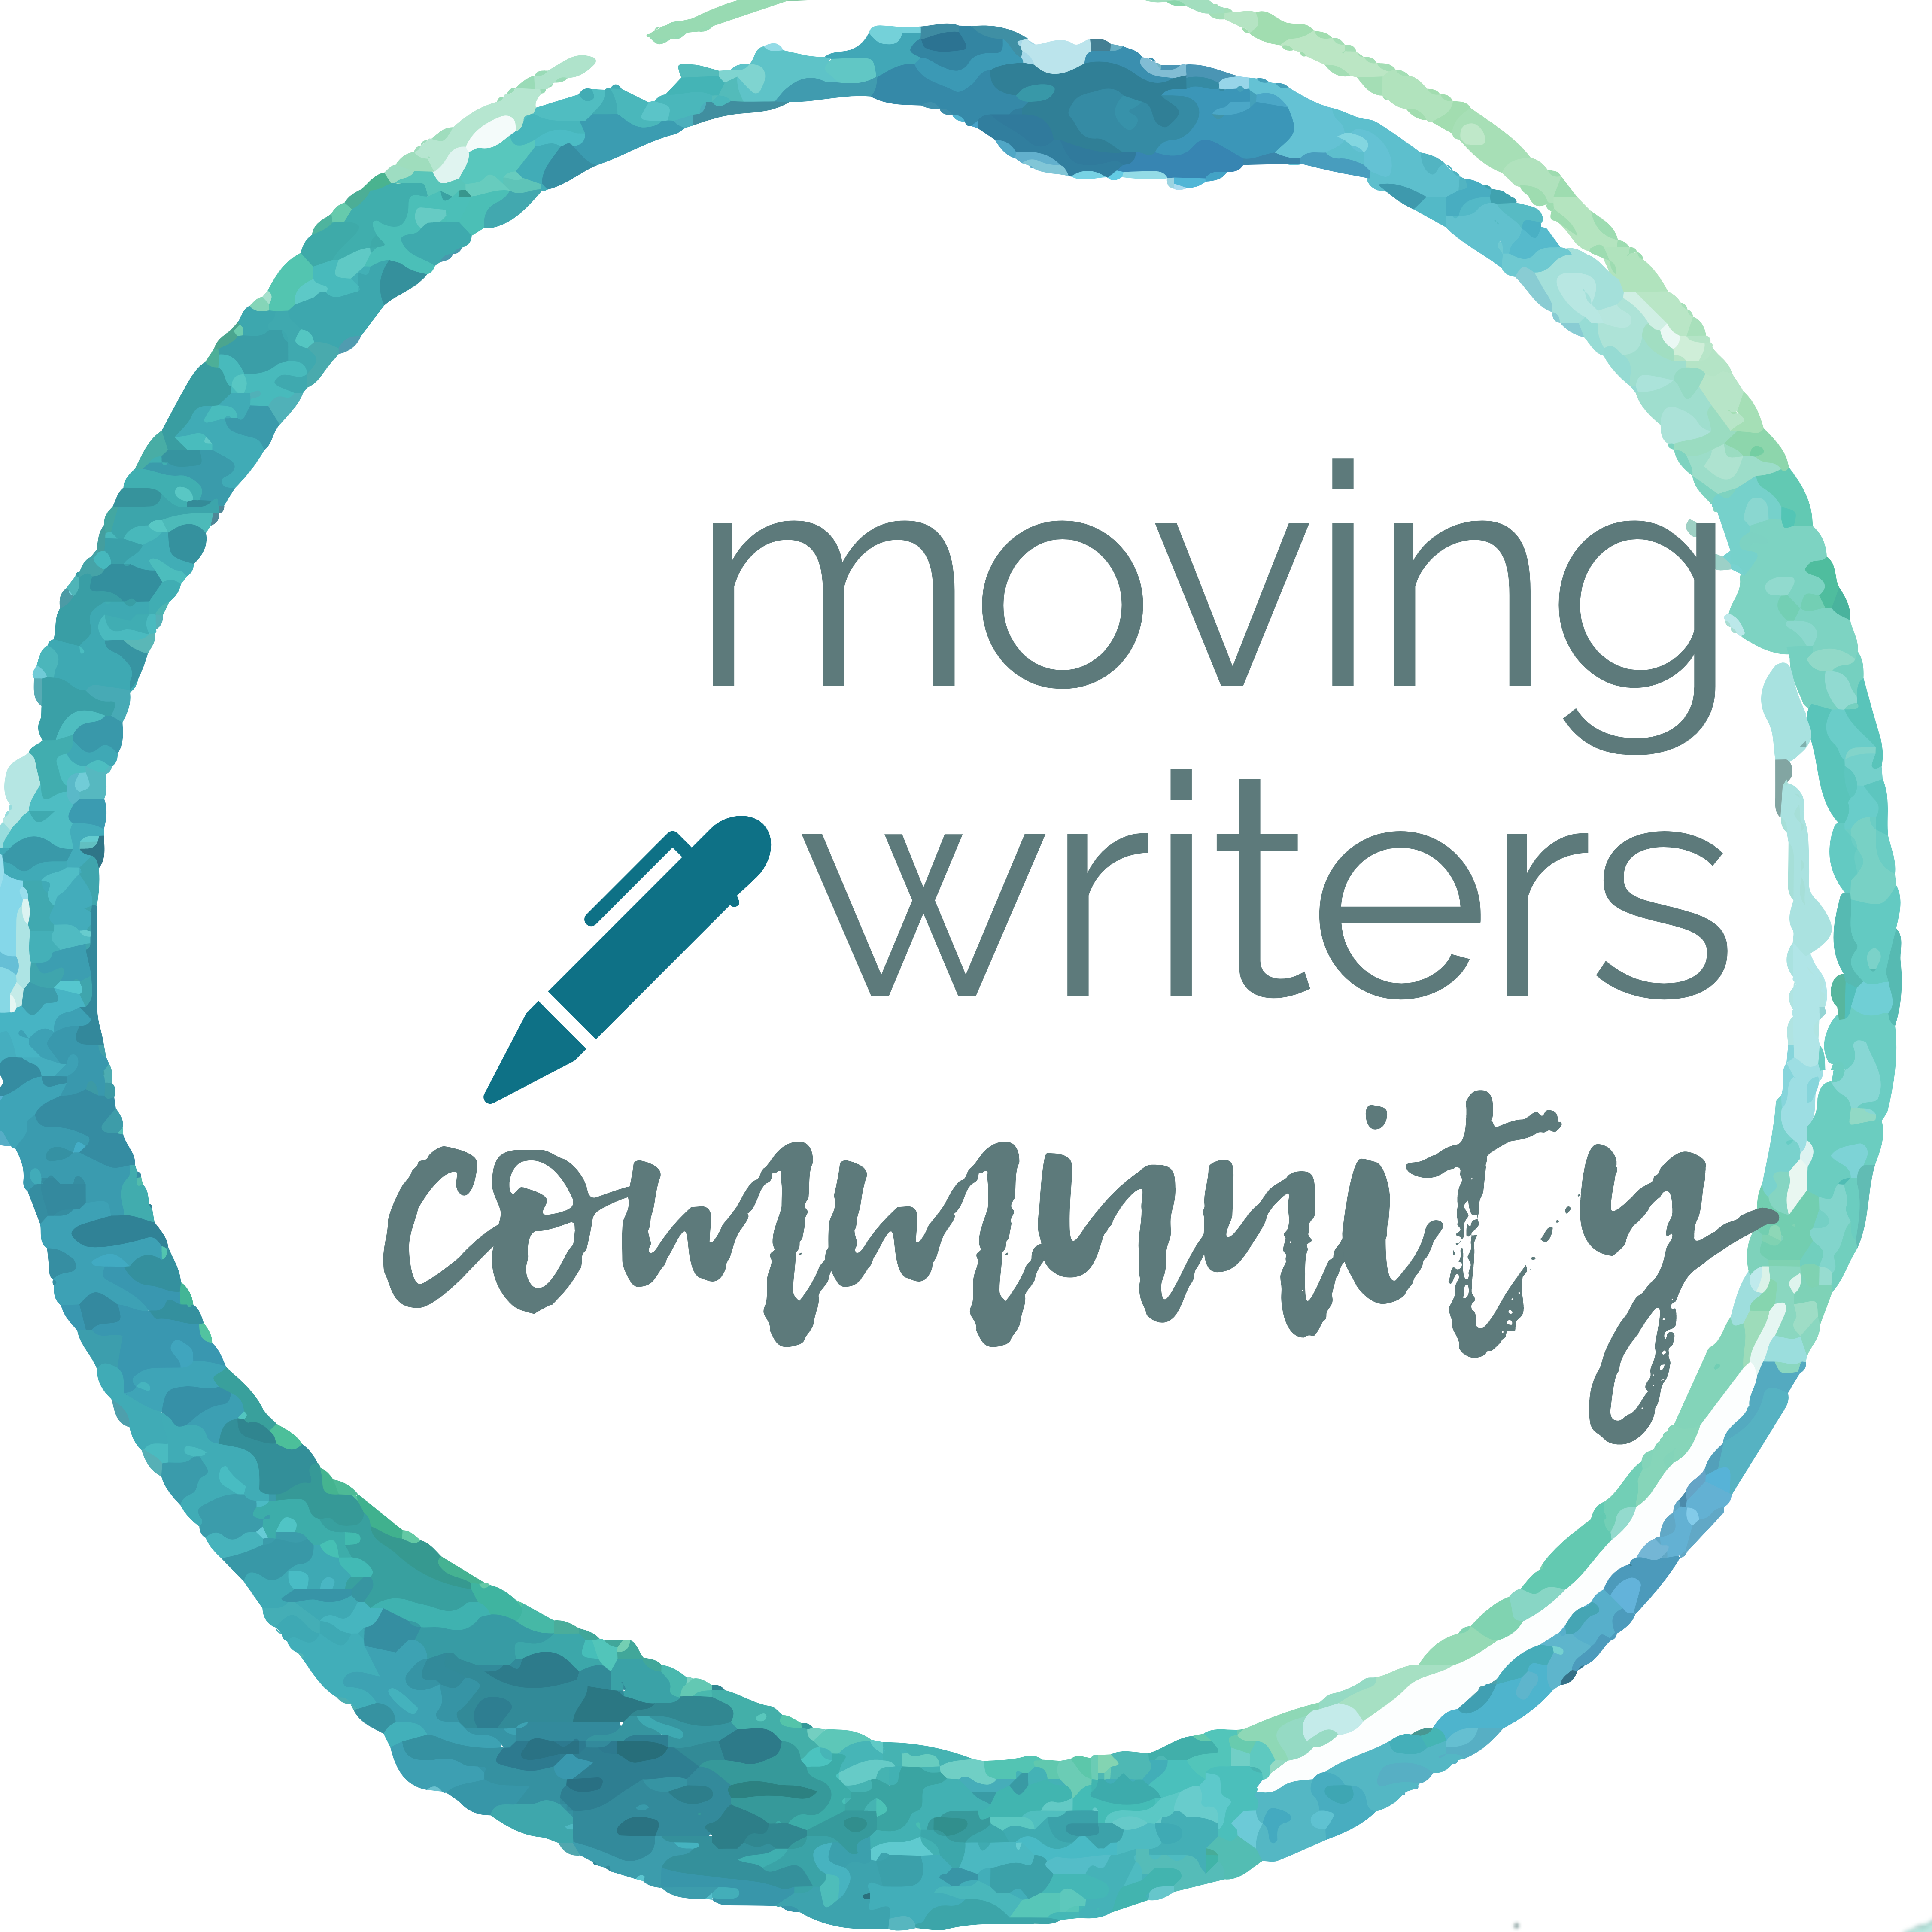 We're Launching the Moving Writers Community!